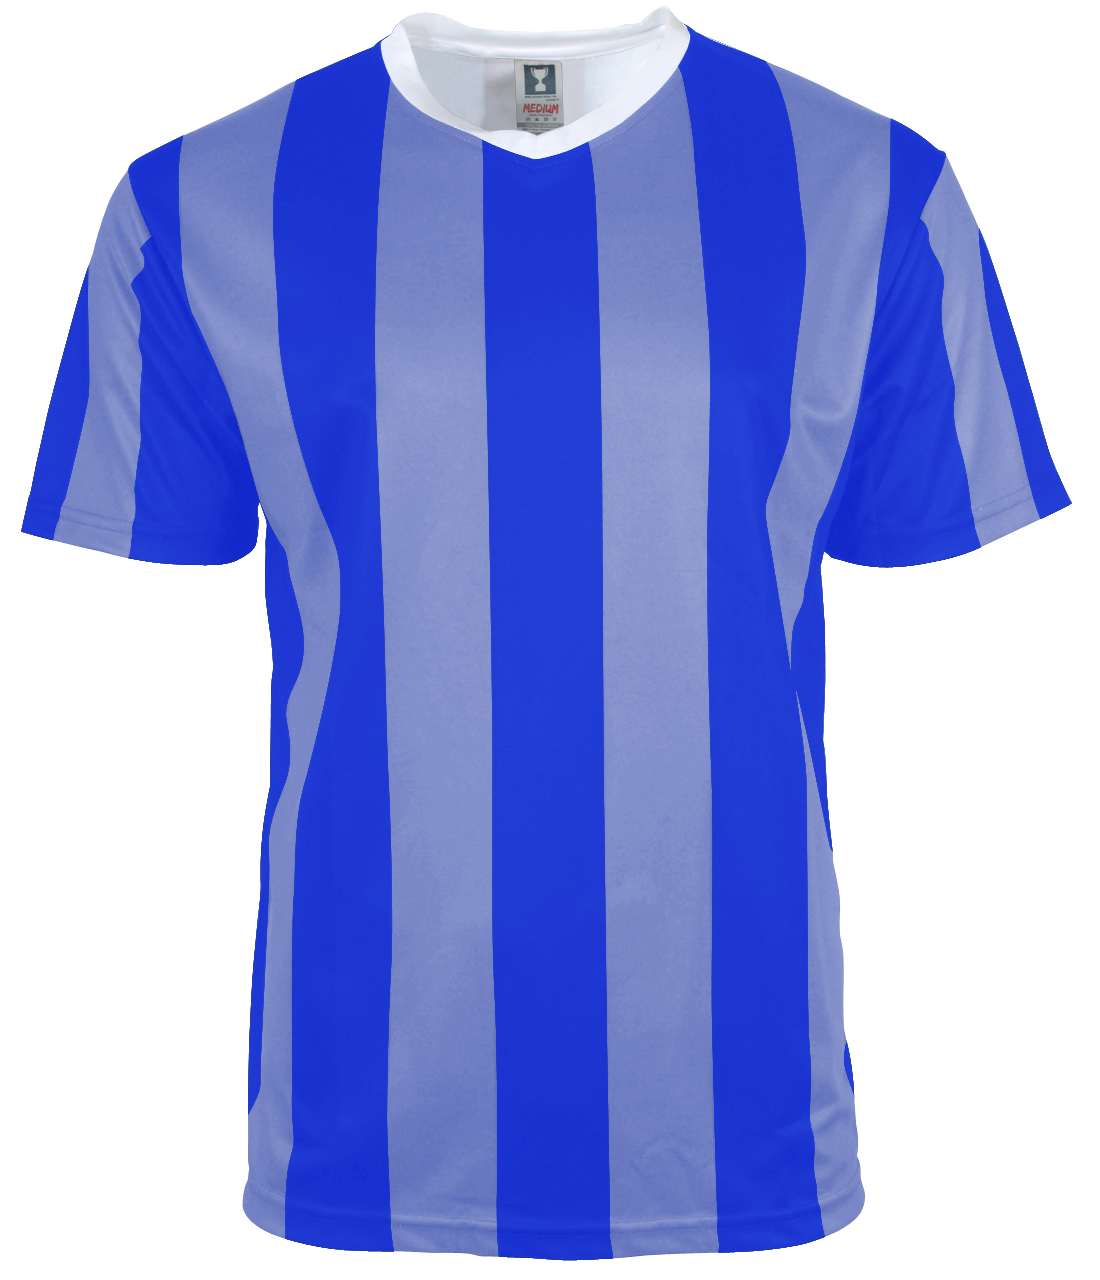 Picture of N3 SPORT Classic Soccer Jersey